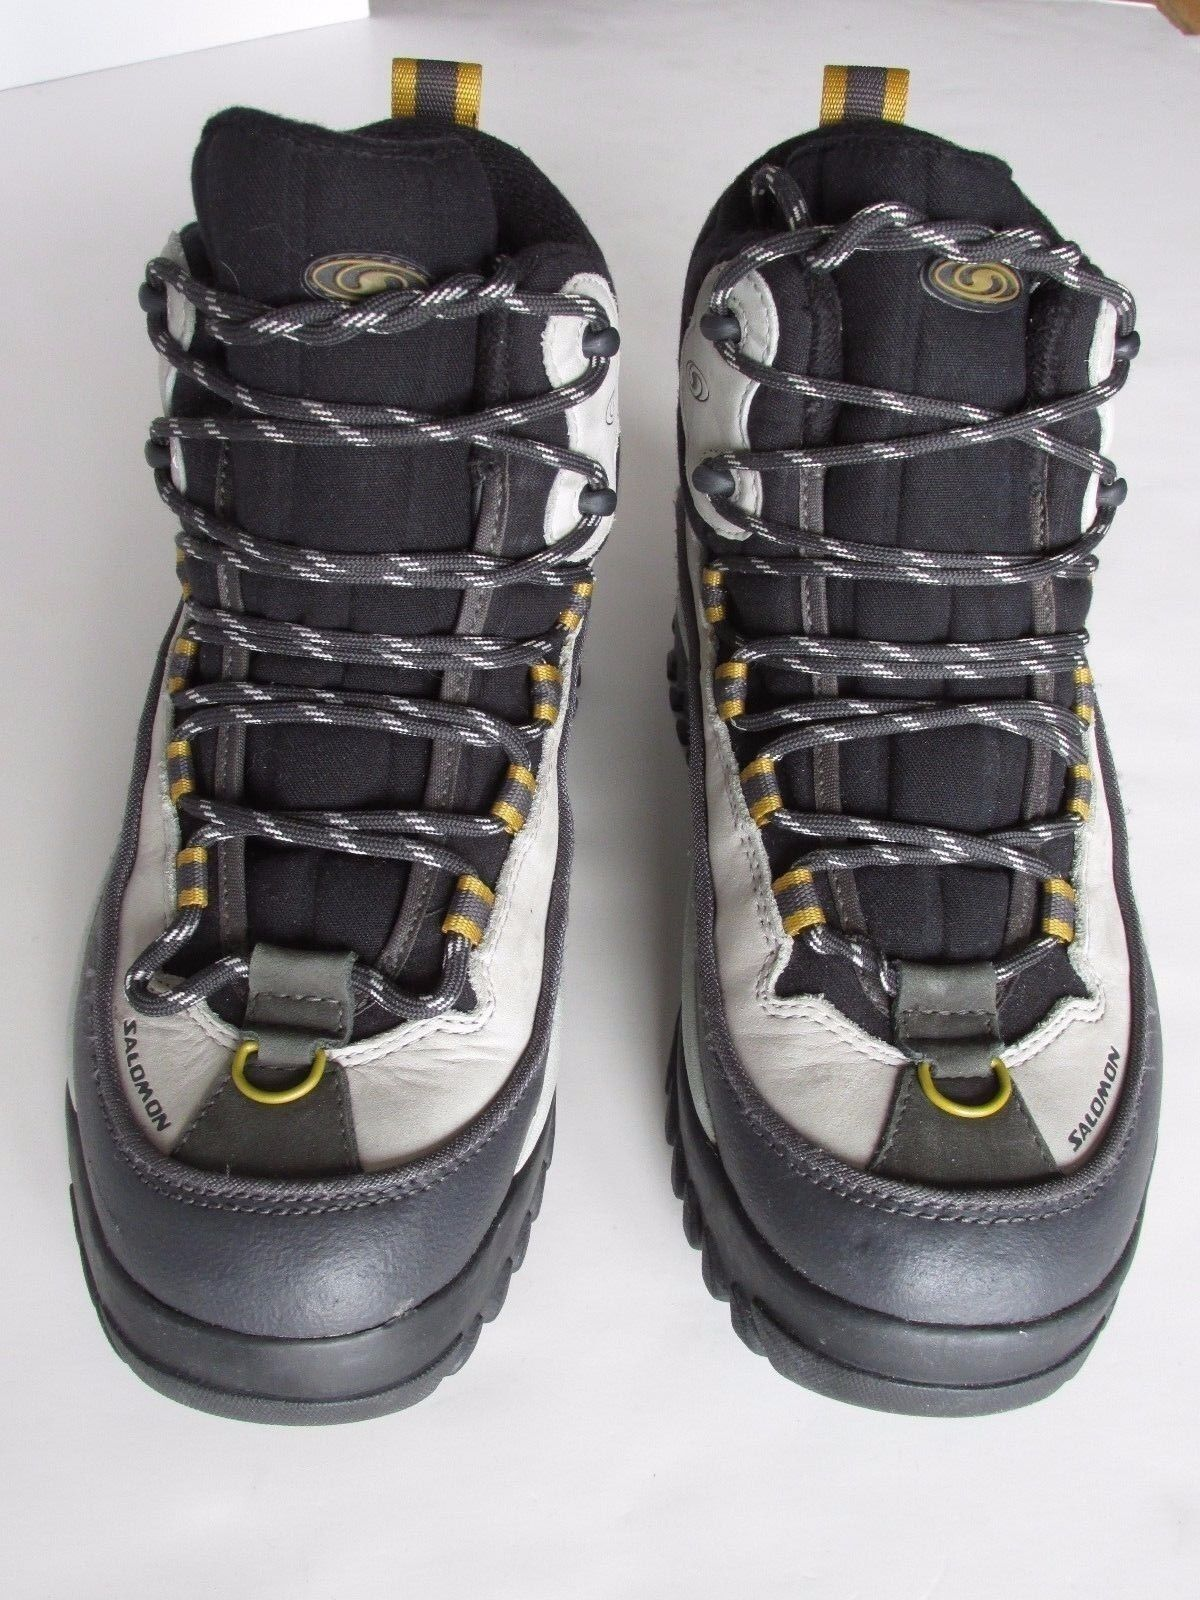 Salomon Clima-Dry Insulated  Black Gray Leather Hiking Trail Boot Women's 7M